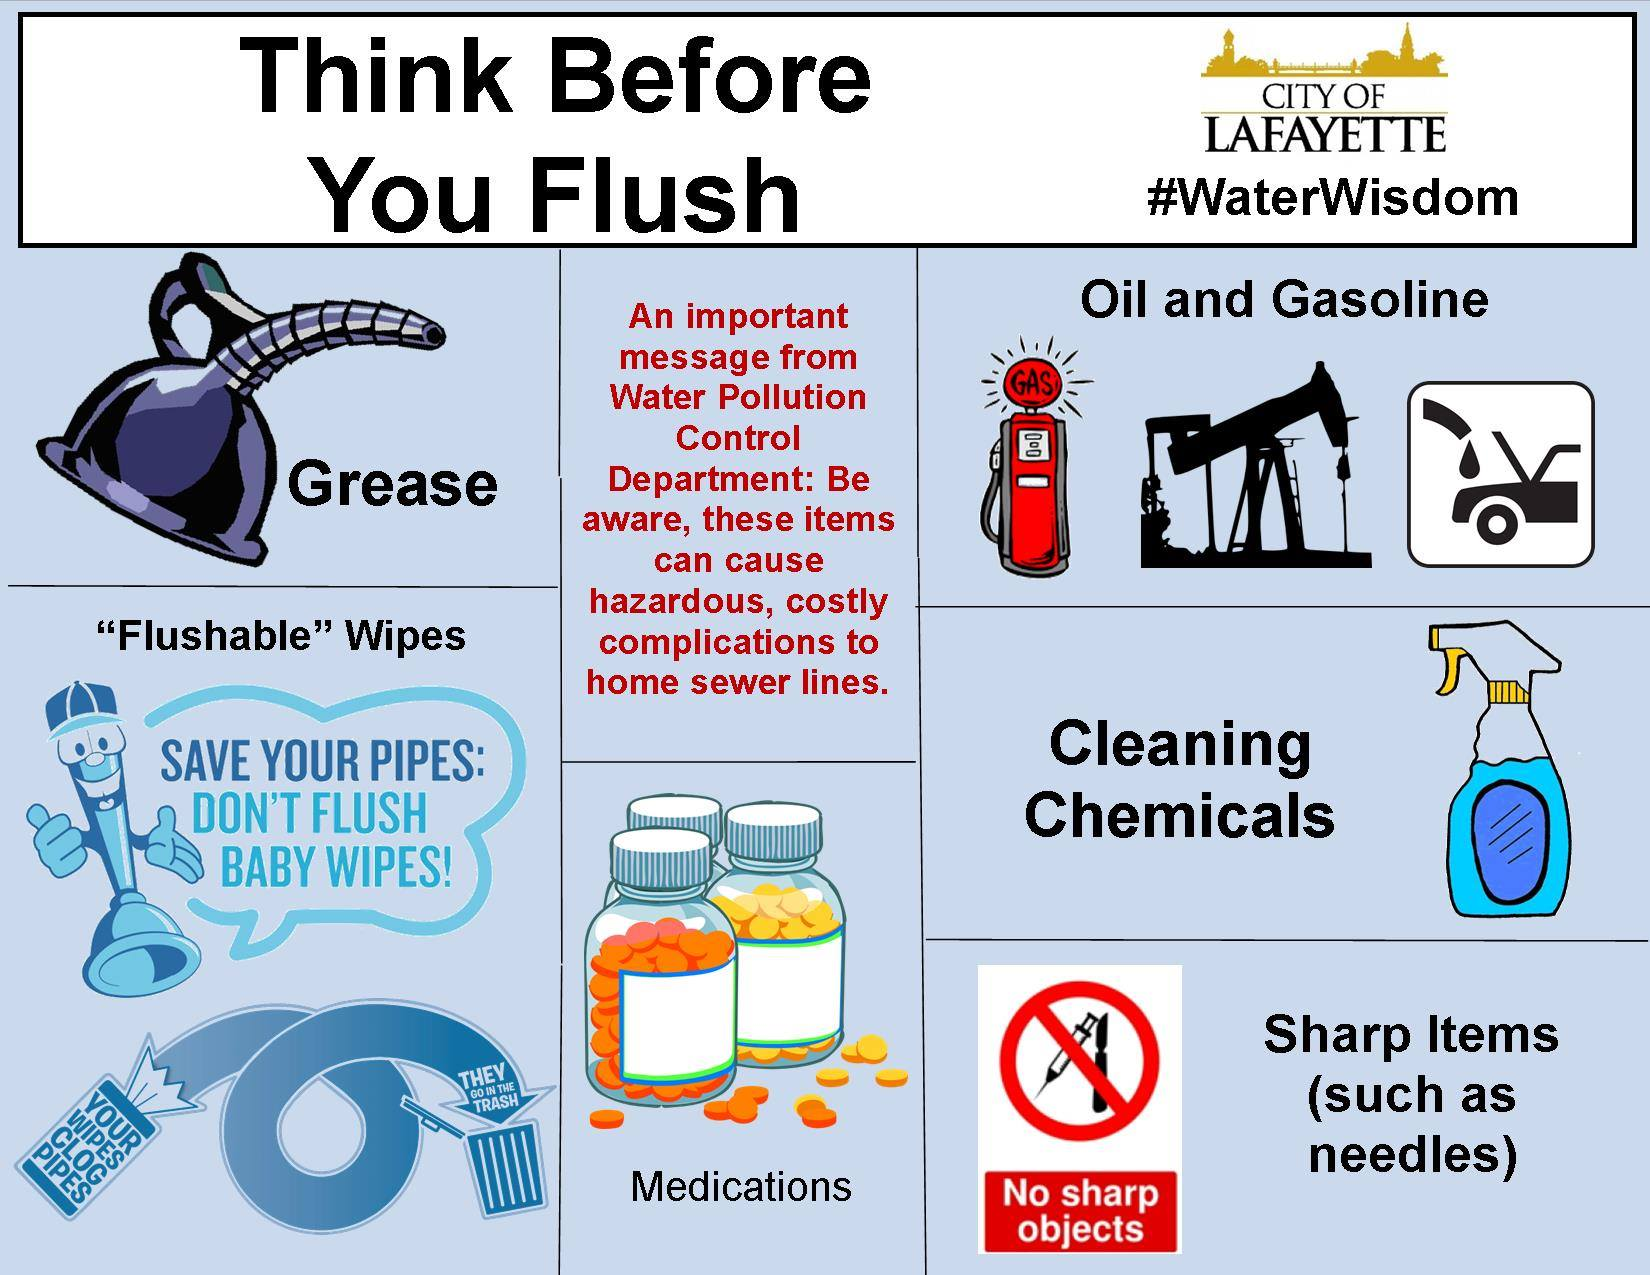 Think before you flush